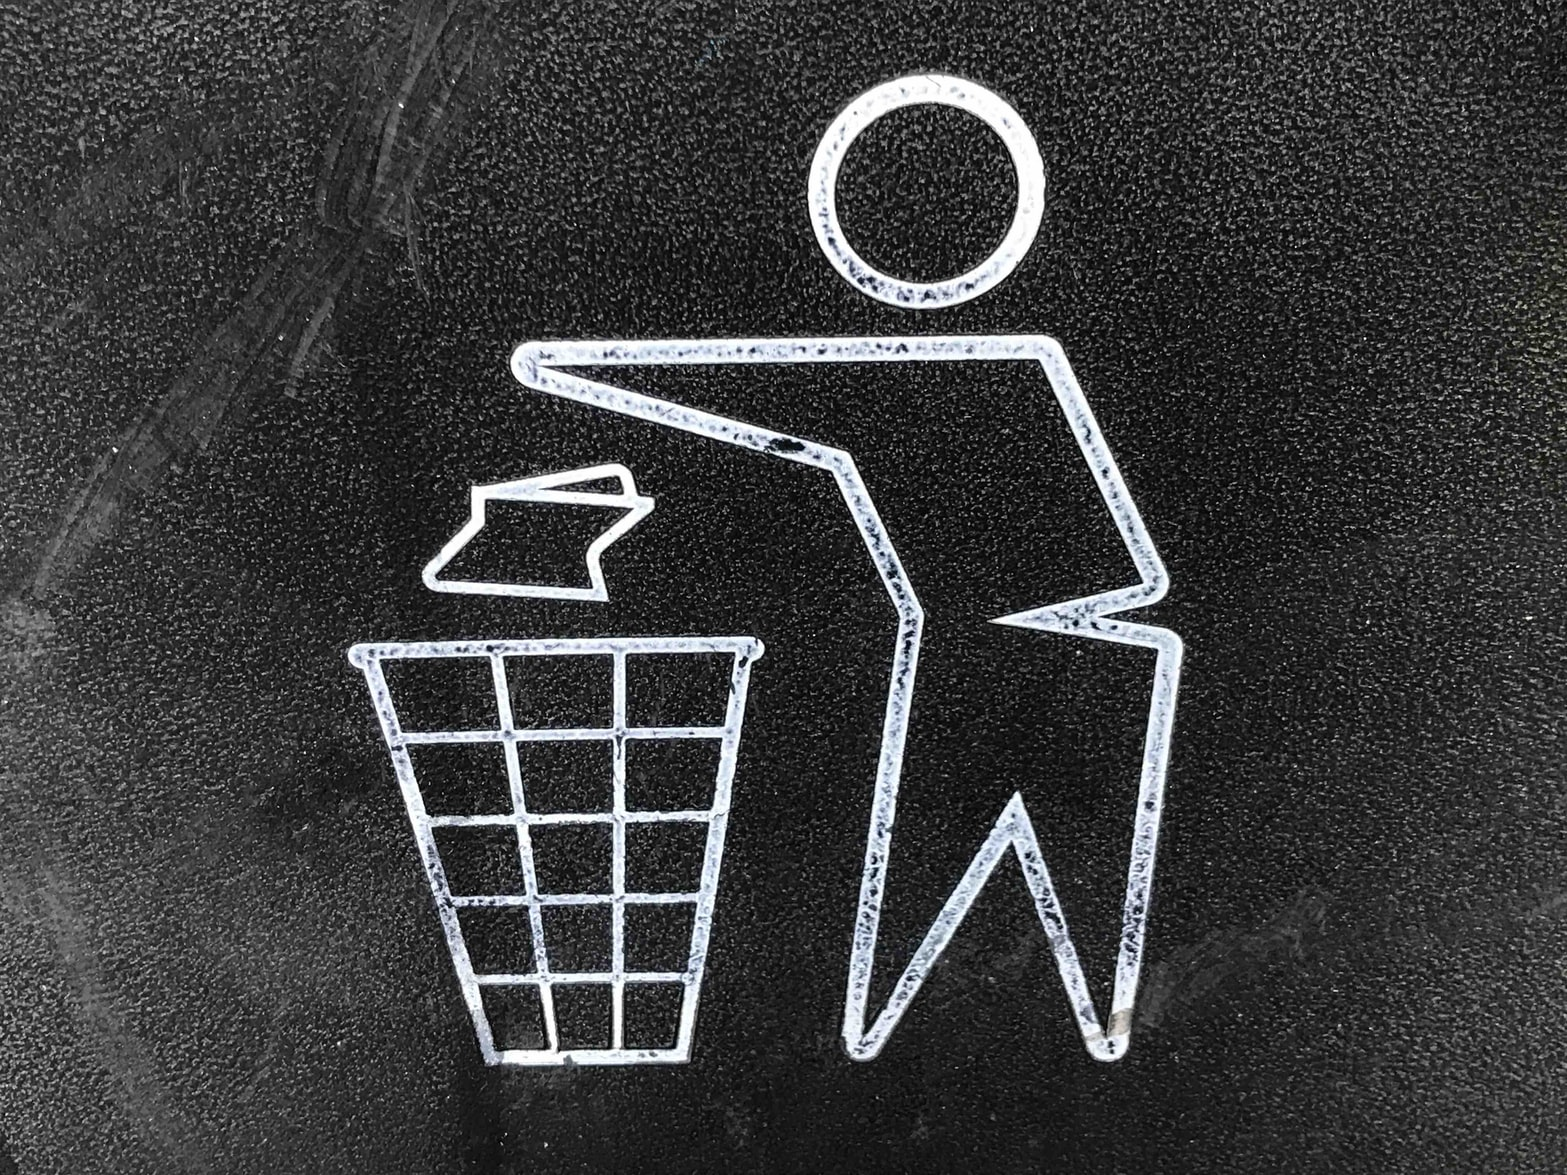 Image of a stylized person throwing trash in a trashcan.